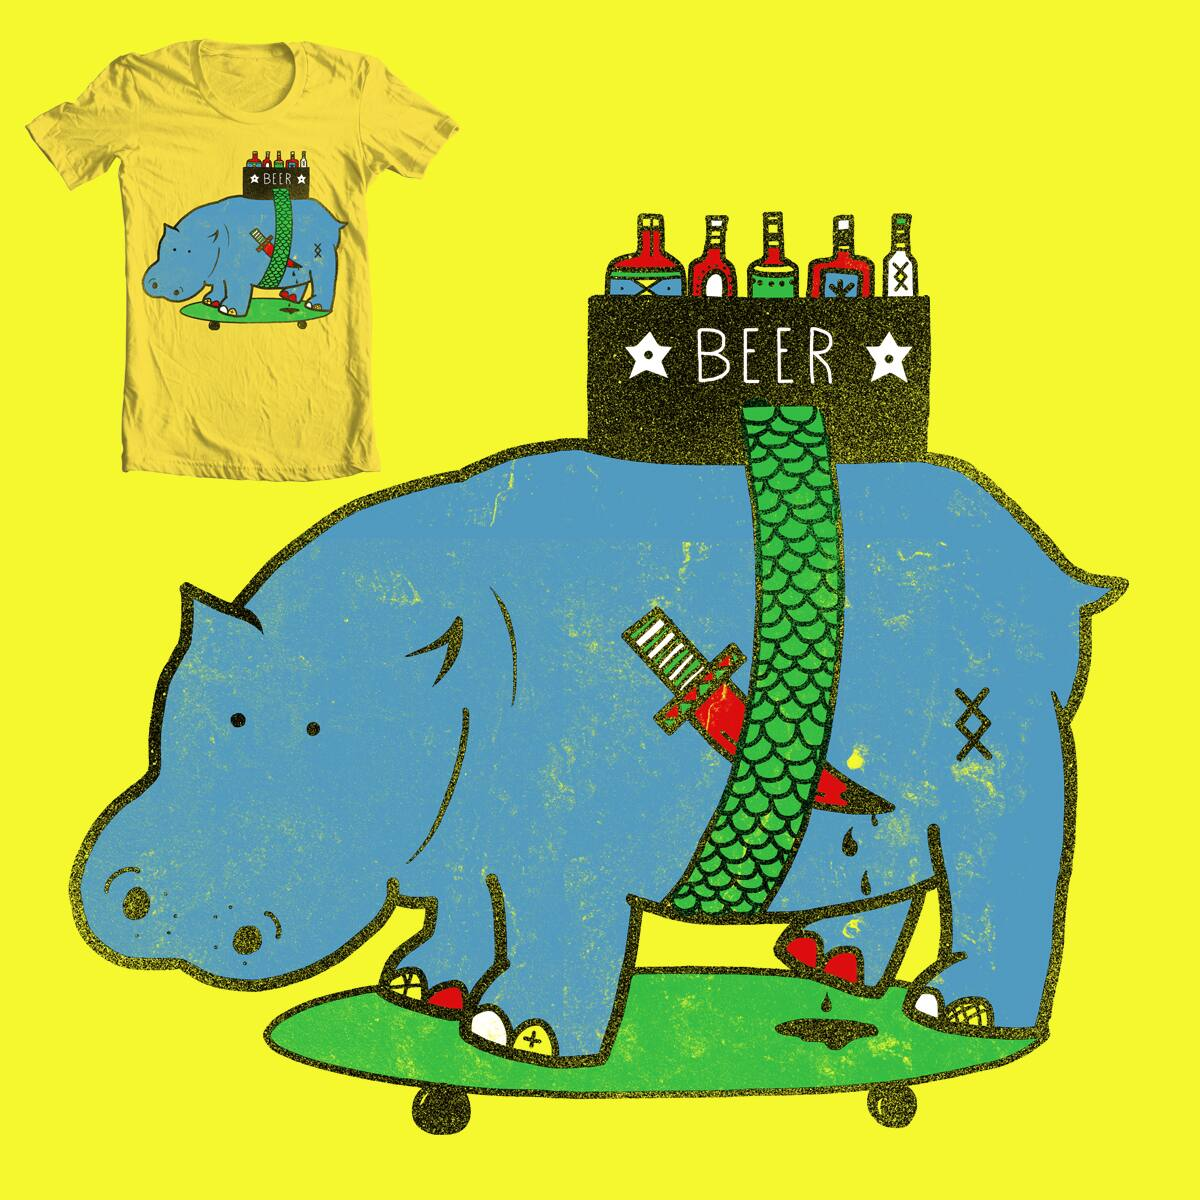 If there's a will, there's a way by Farnell on Threadless